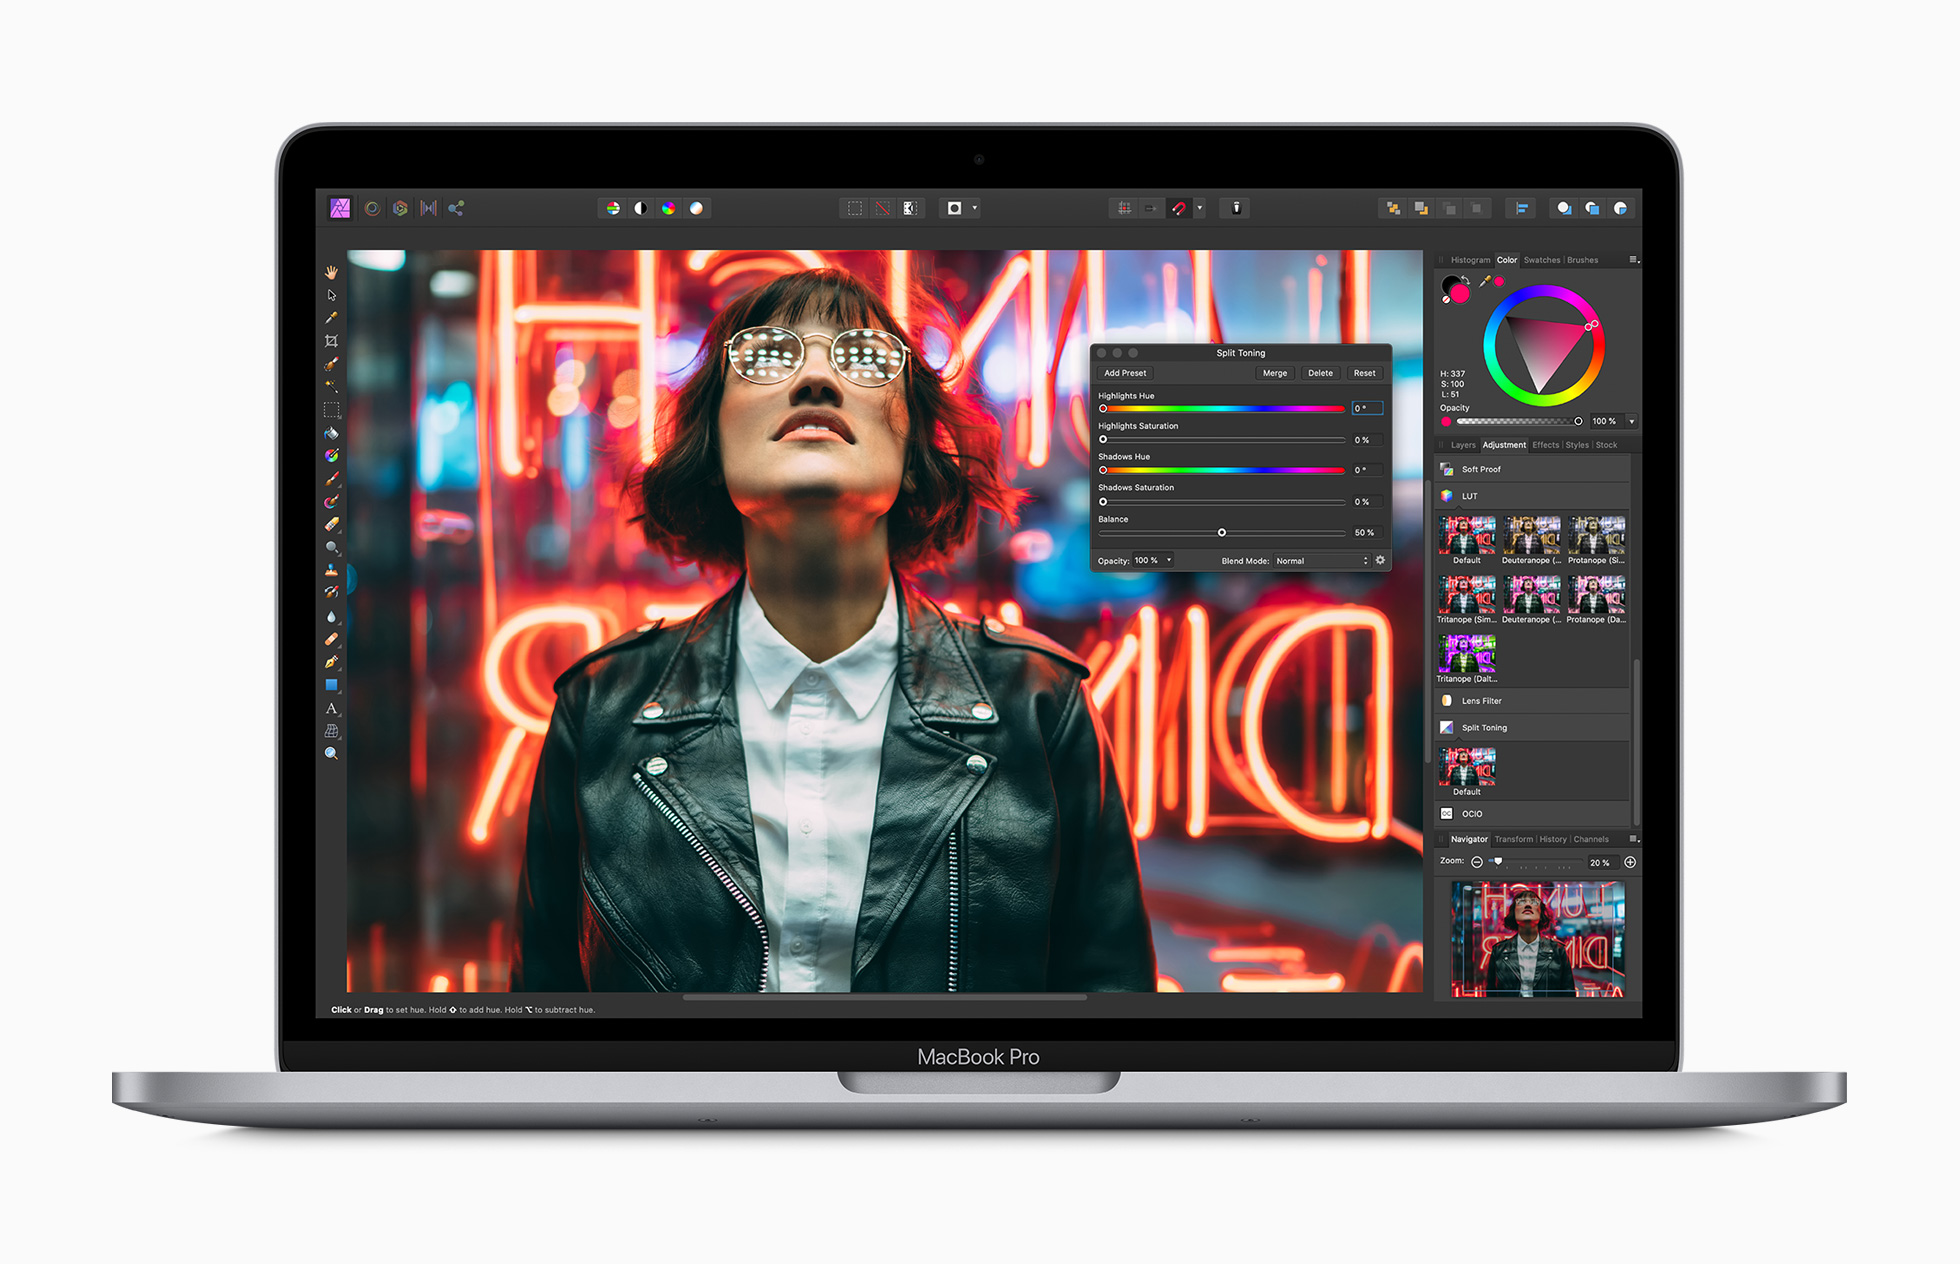 Apple_macbook_pro-13-inch-with-affinity-photo_screen_05042020_big.jpg.large_2x.jpg (1960×1264)